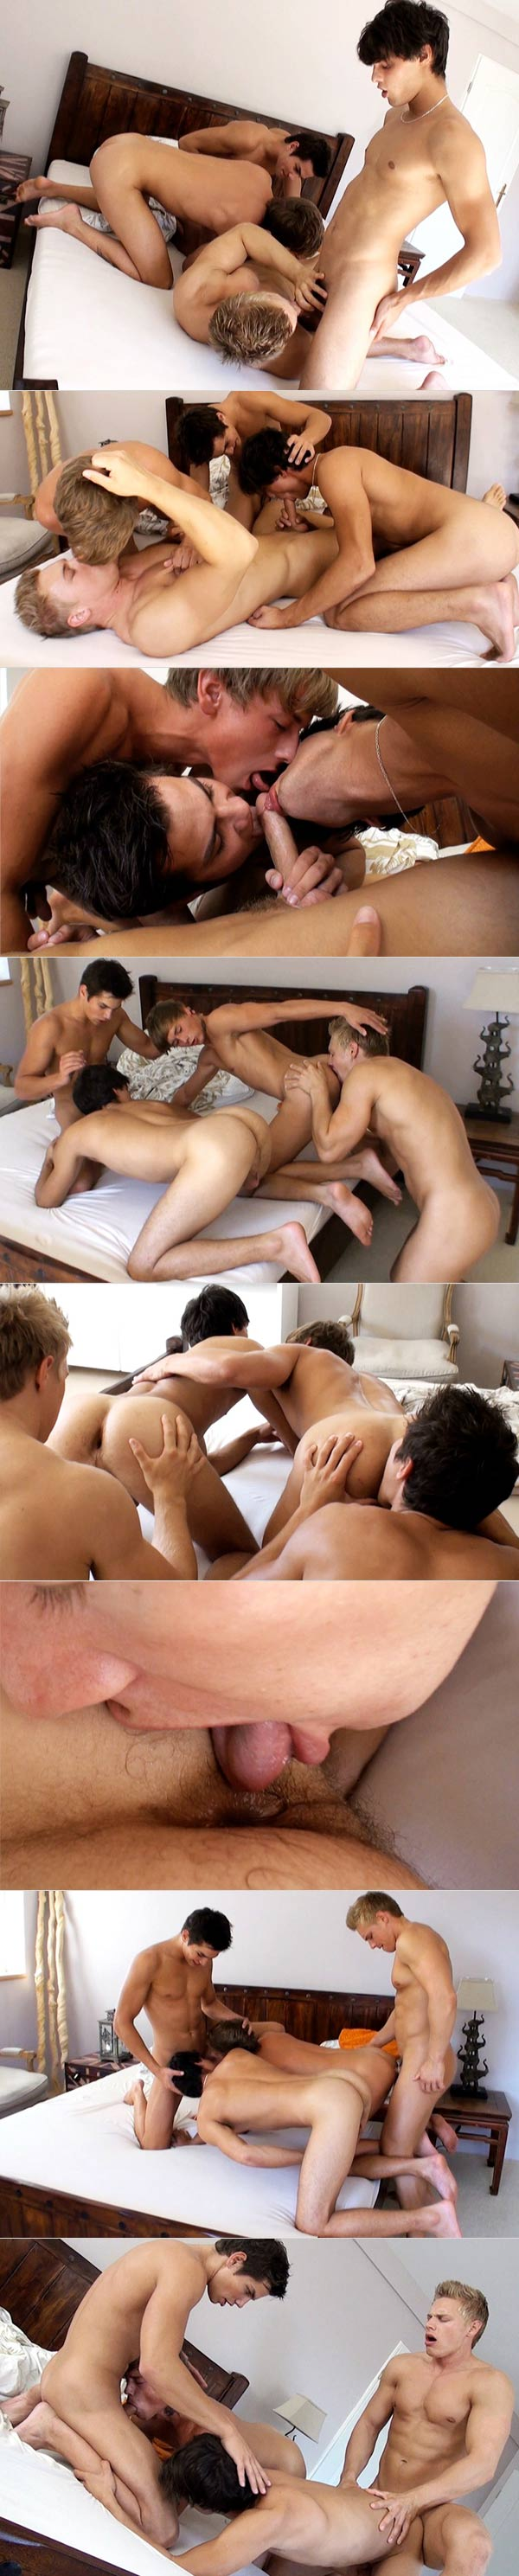 Brady Jensen and the Kinky Angels (Part 2) at BelAmiOnline.com